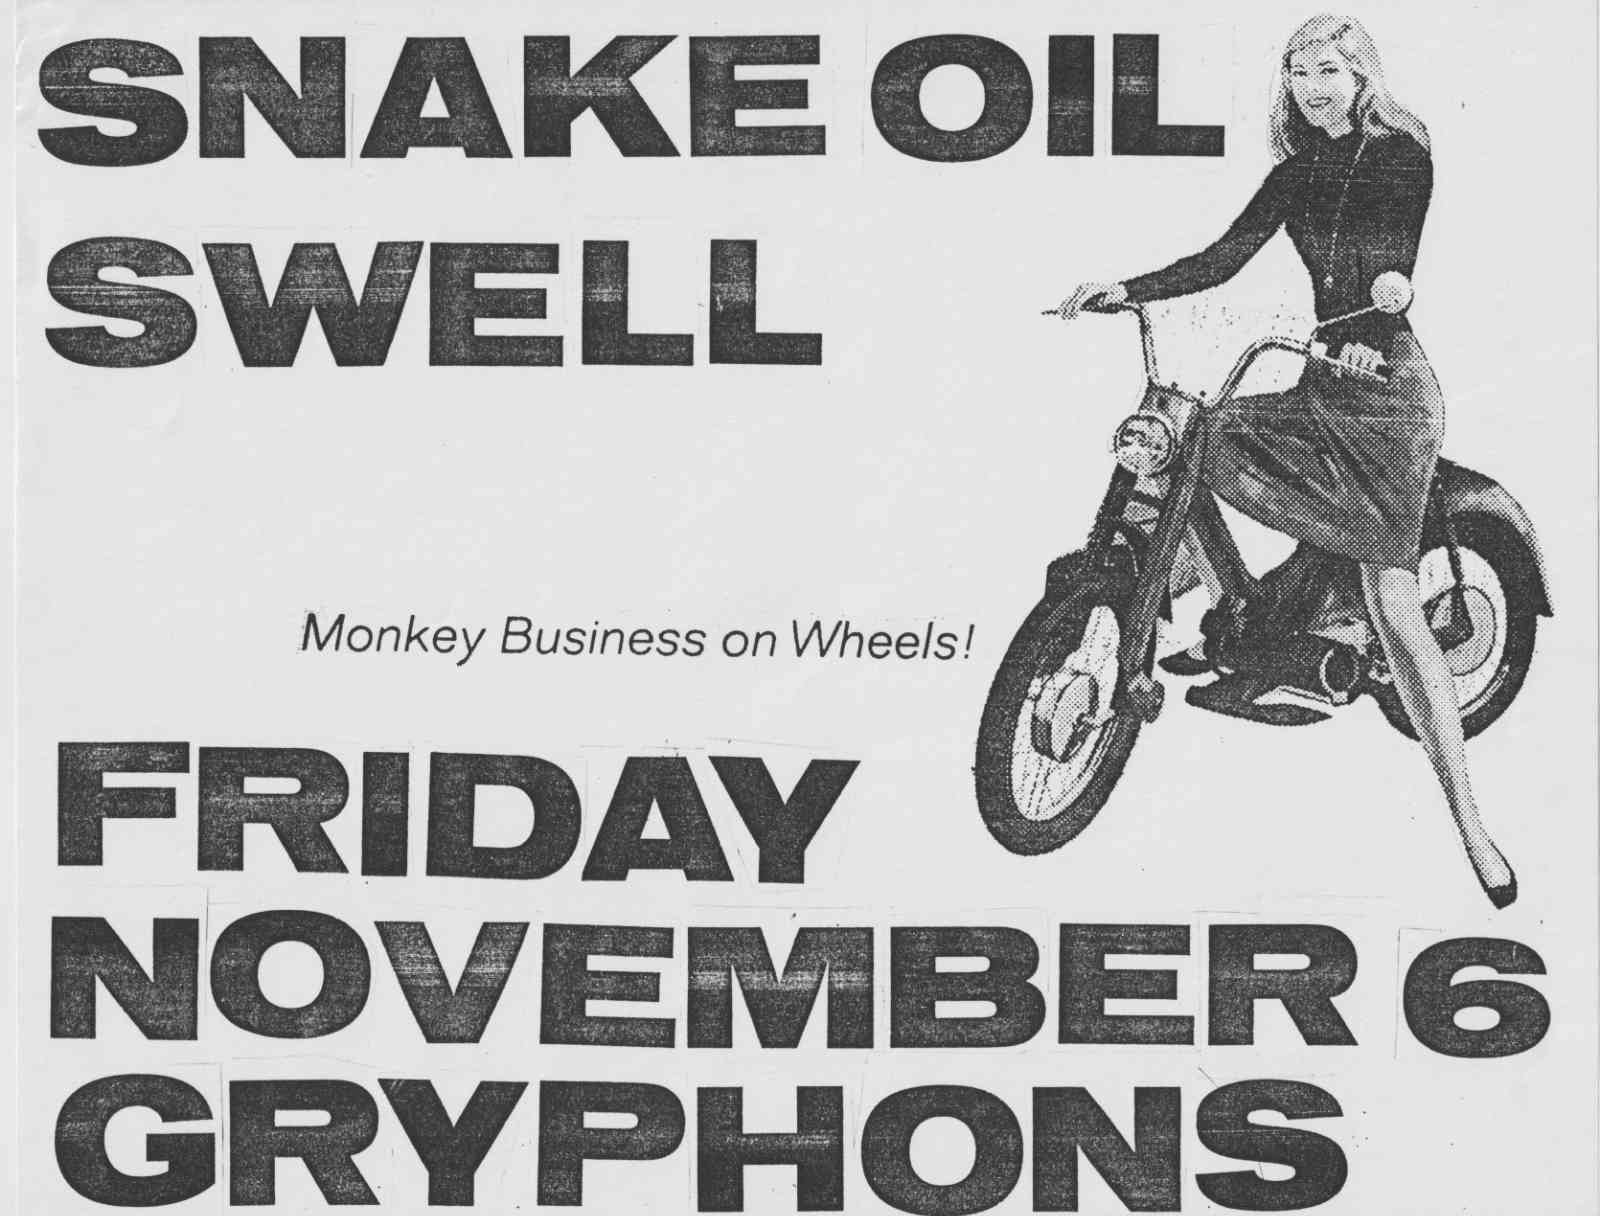 Snake Oil played Gryphons with Swell